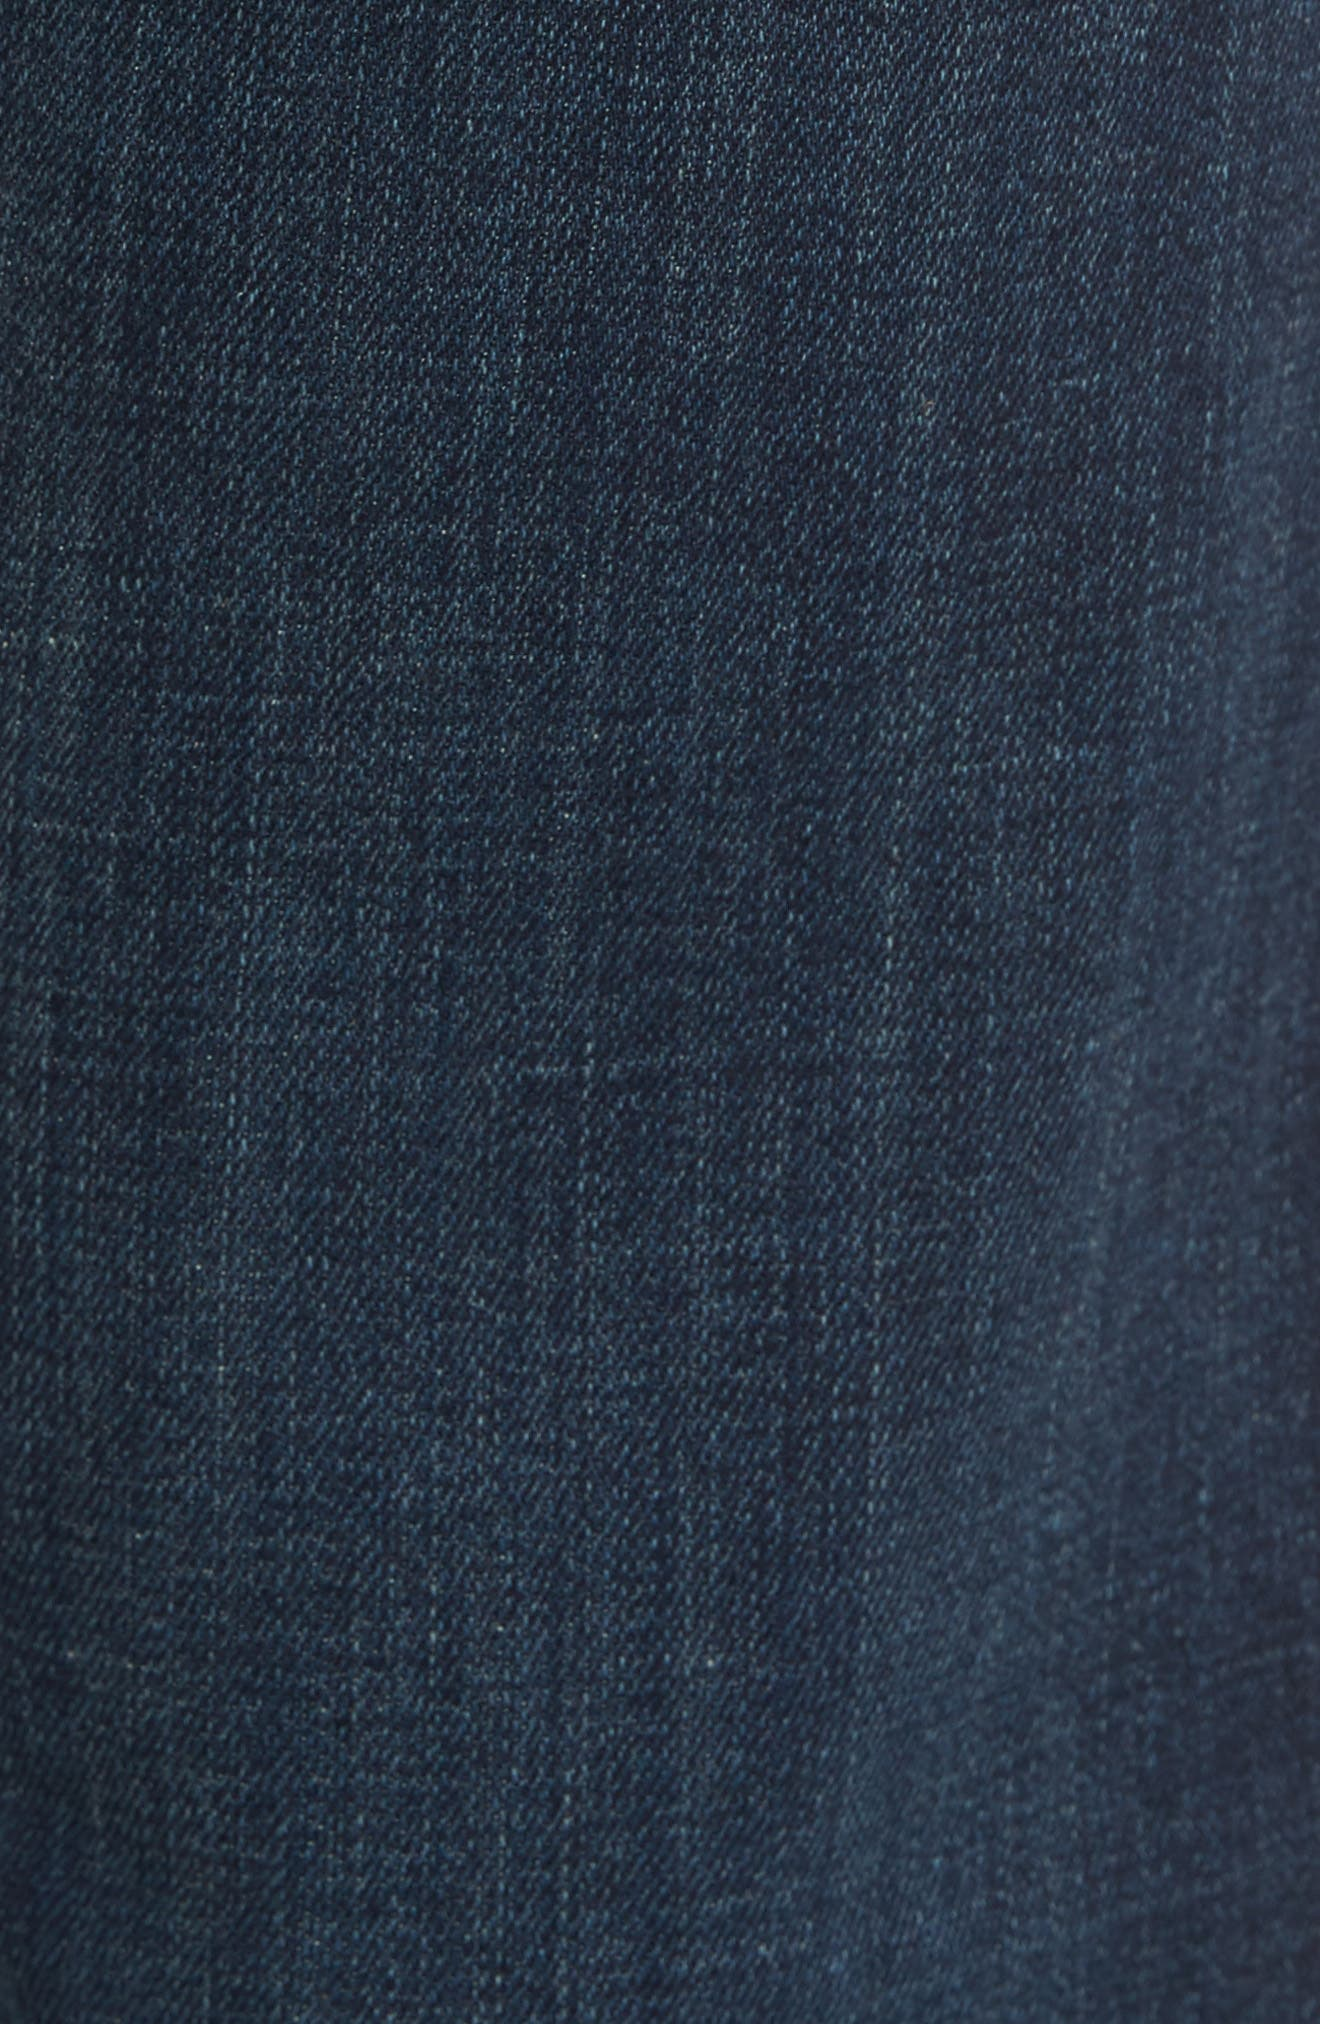 Doheny Relaxed Fit Jeans,                             Alternate thumbnail 6, color,                             Knowle